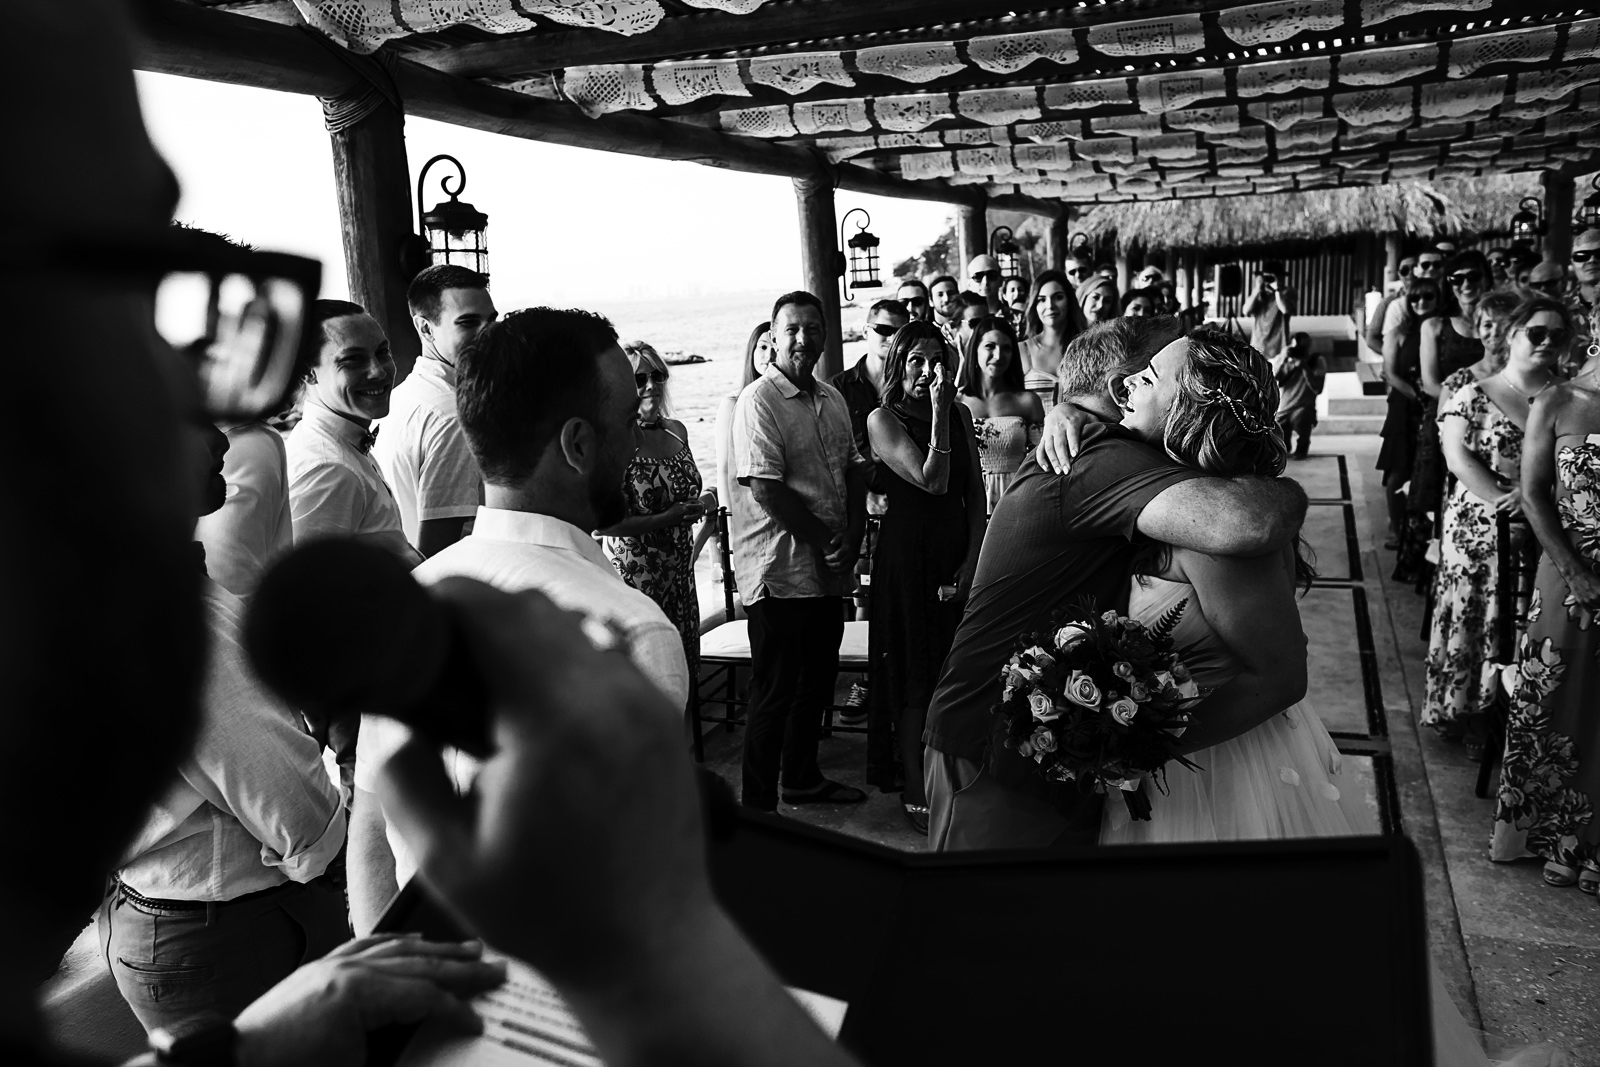 bride-hugs-dad-end-aisle-wedding-ceremony.jpg